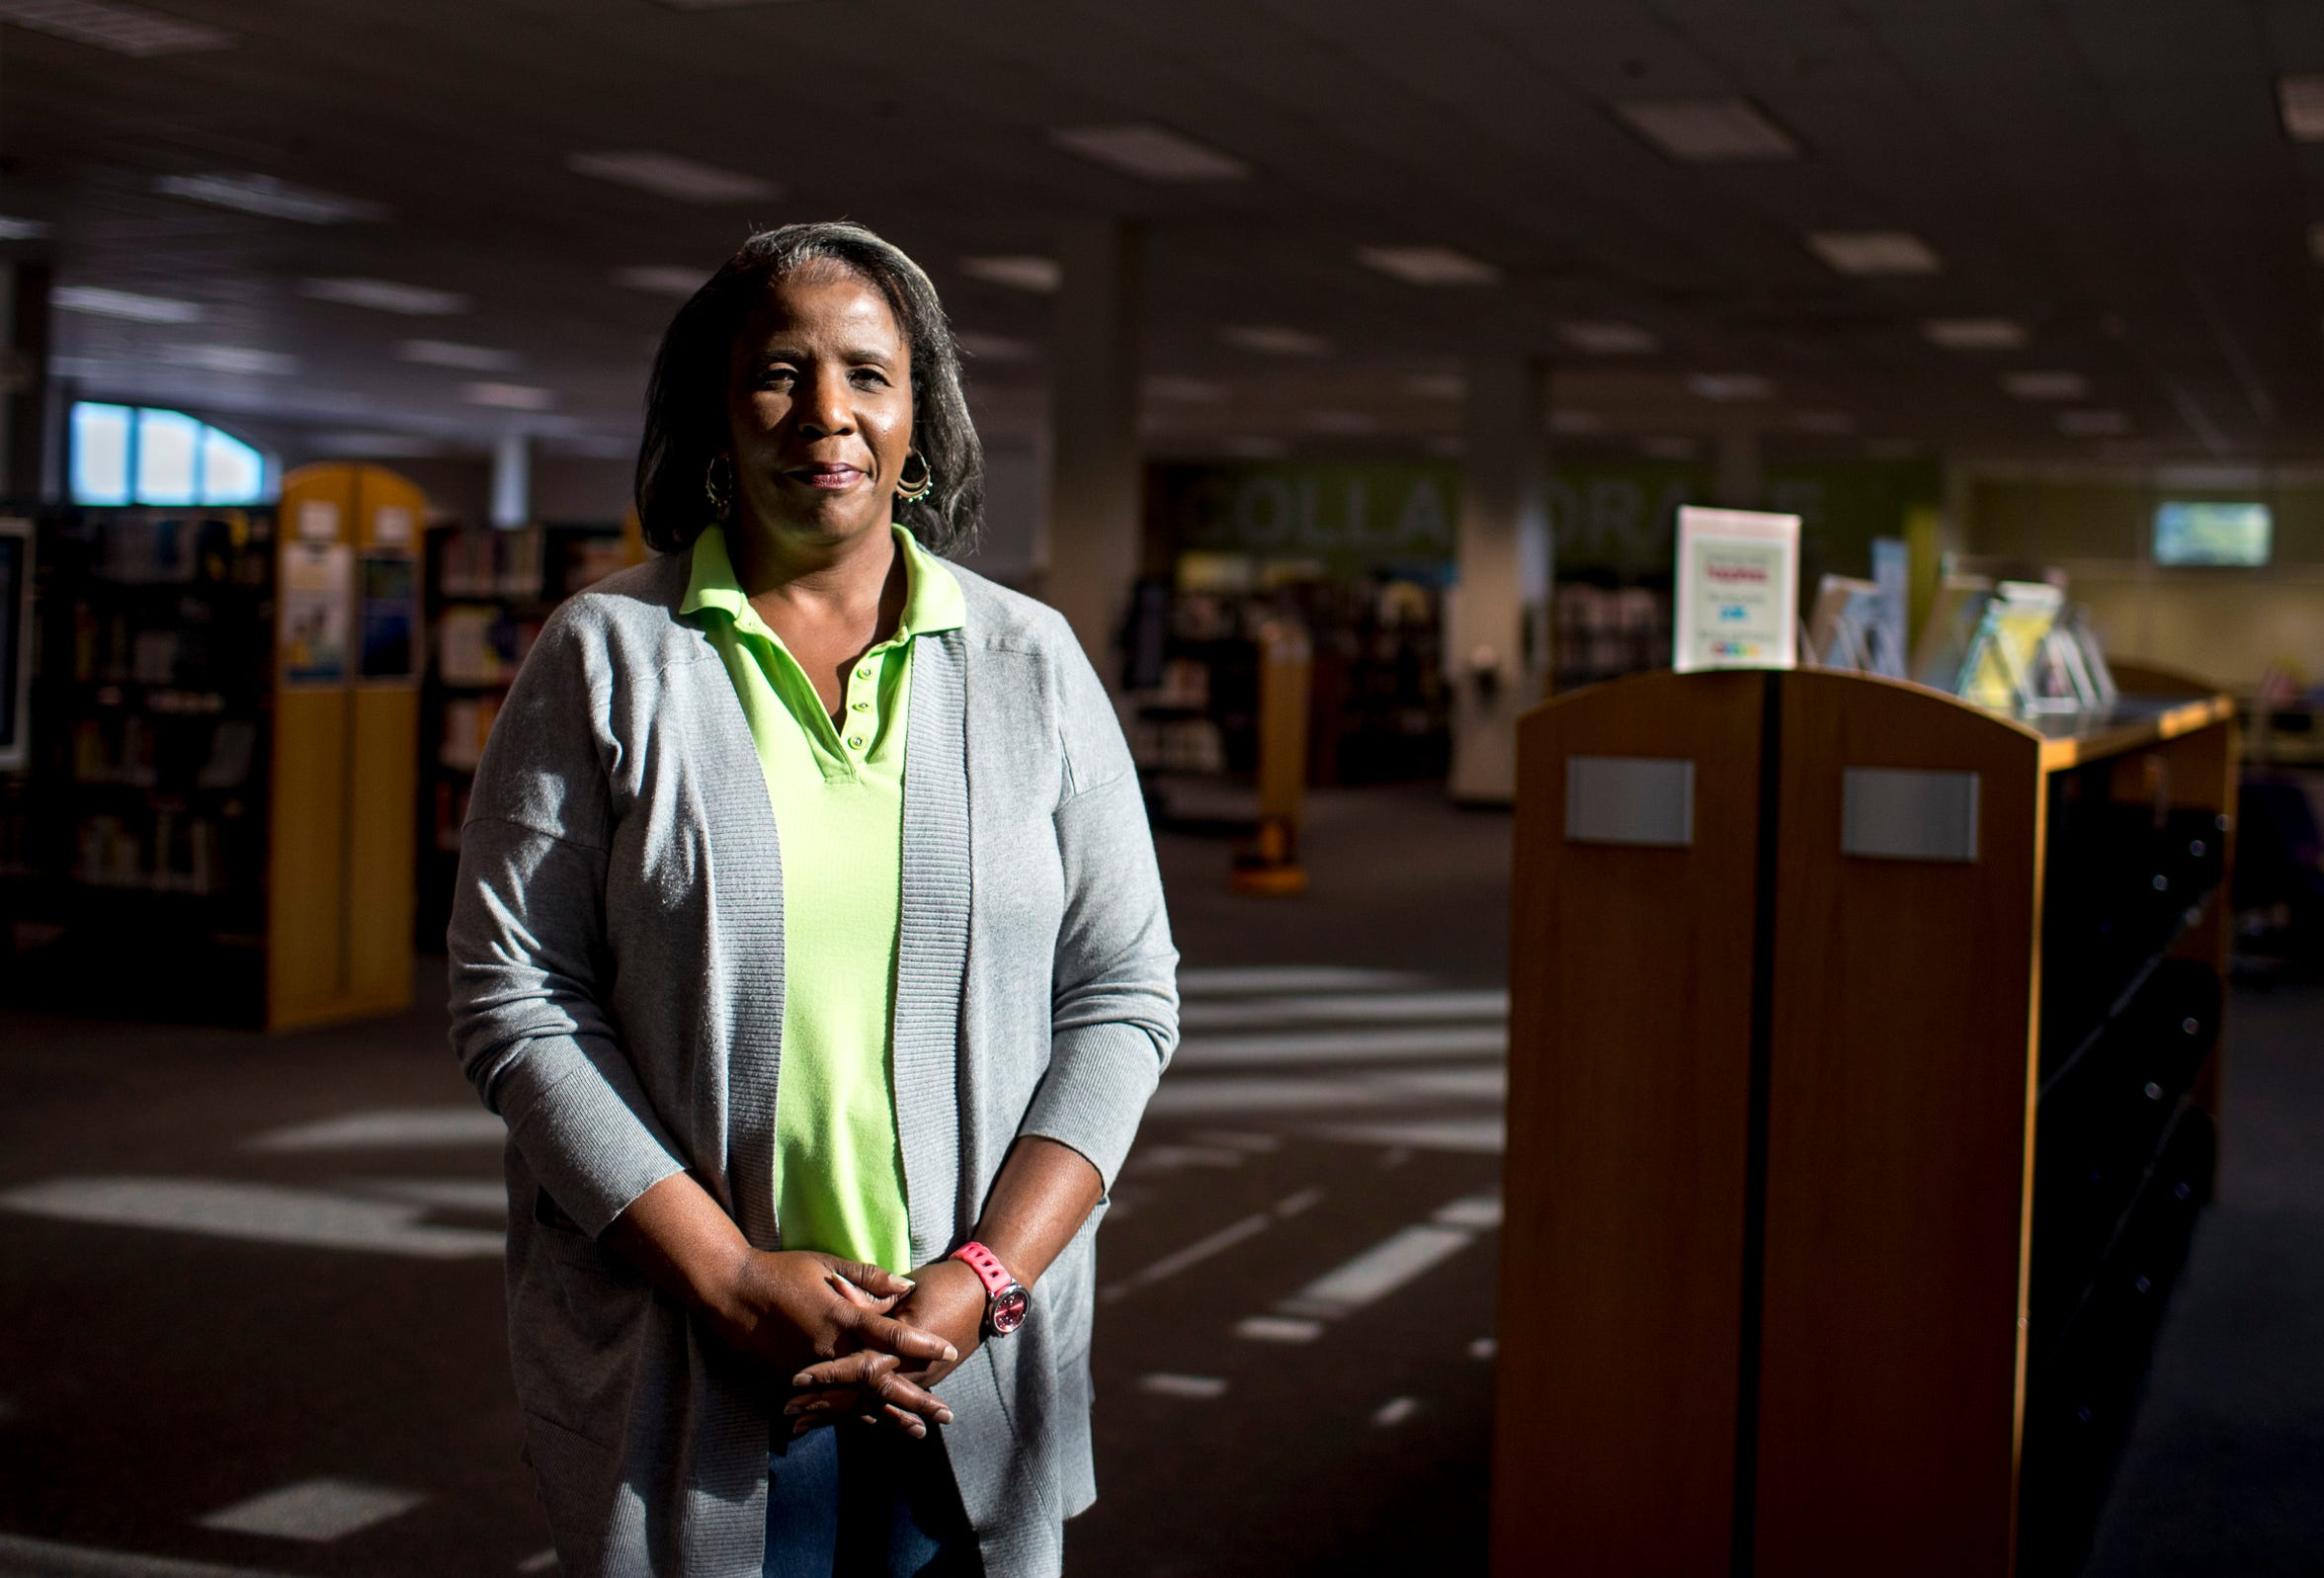 Technical services supervisor Jackie Warfield, a librarian who curates material, stands in the Montgomery County Public Library in Clarksville on Saturday, Aug. 17, 2019.